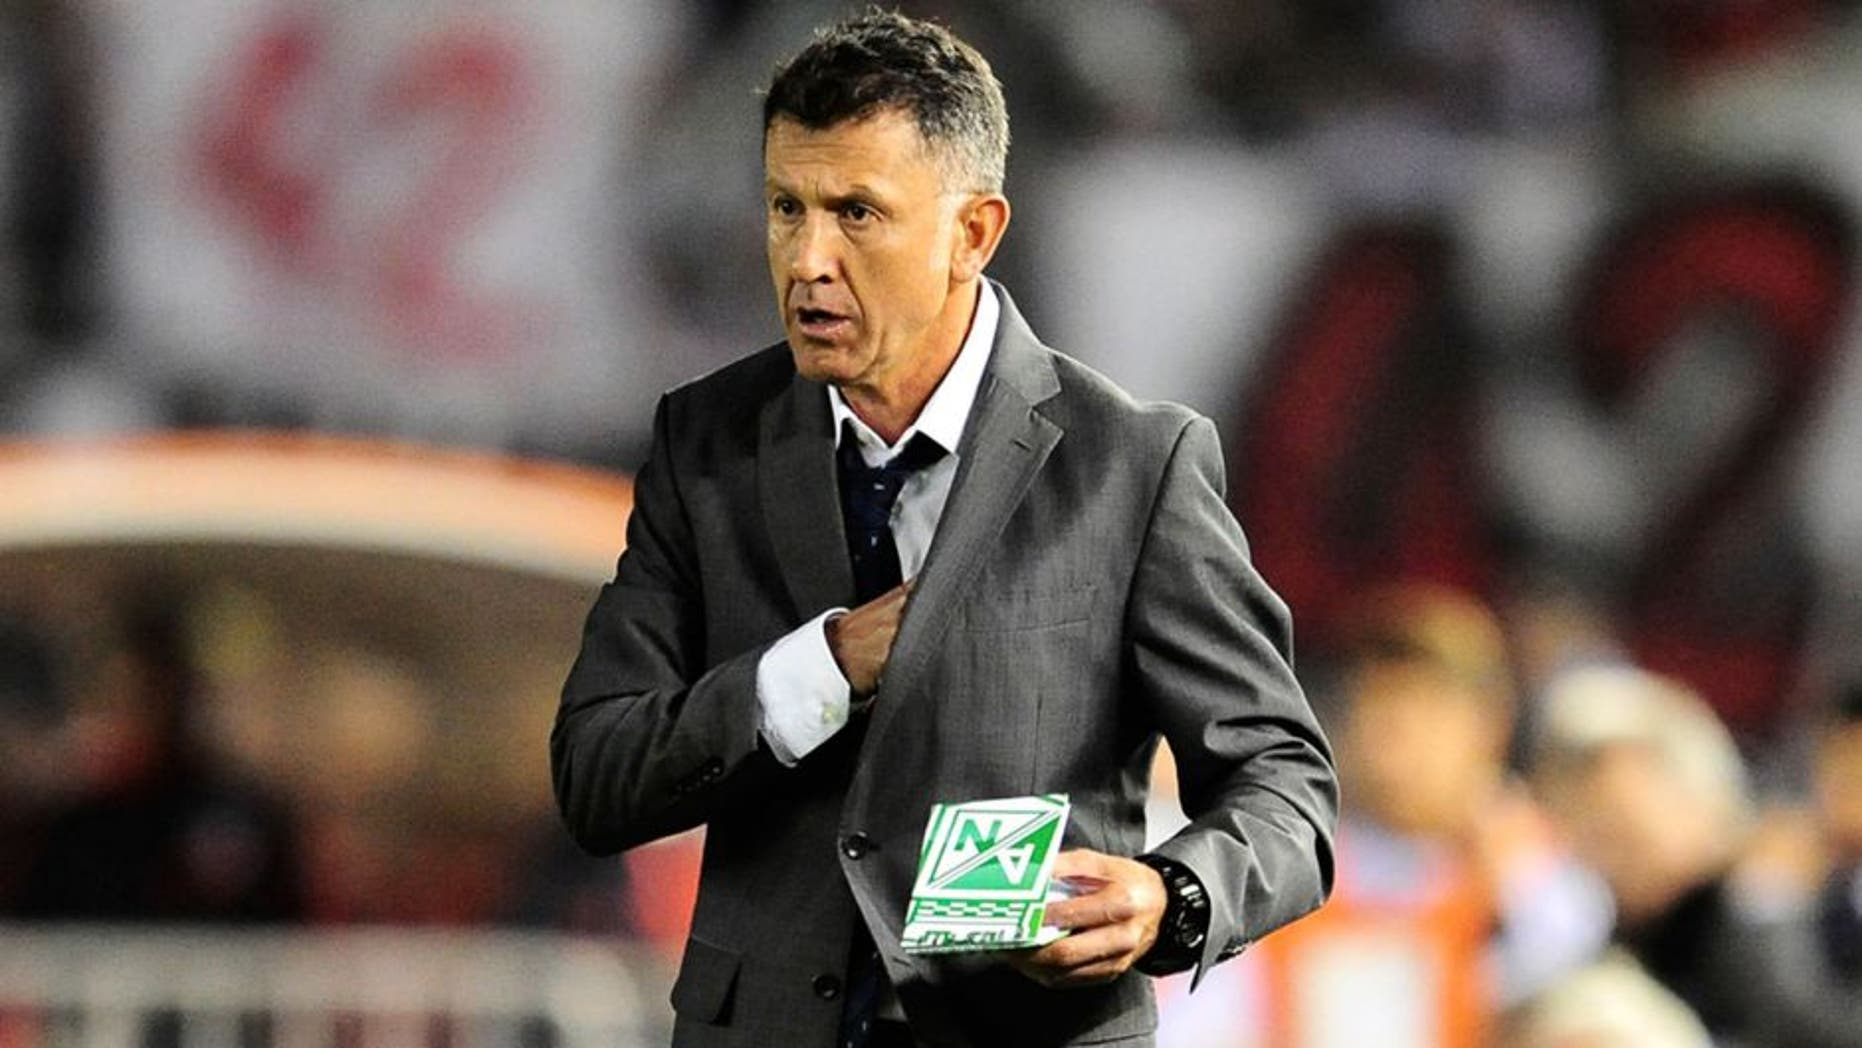 BUENOS AIRES, ARGENTINA - DECEMBER 10: Juan Carlos Osorio, coach of Atletico Nacional looks on during a second leg final match between River Plate and Atletico Nacional as part of Copa Total Sudamericana 2014 at Antonio Vespucio Liberti Stadium on December 10, 2014 in Buenos Aires, Argetina. (Photo by Alfredo Herms/LatinContent/Getty Images)